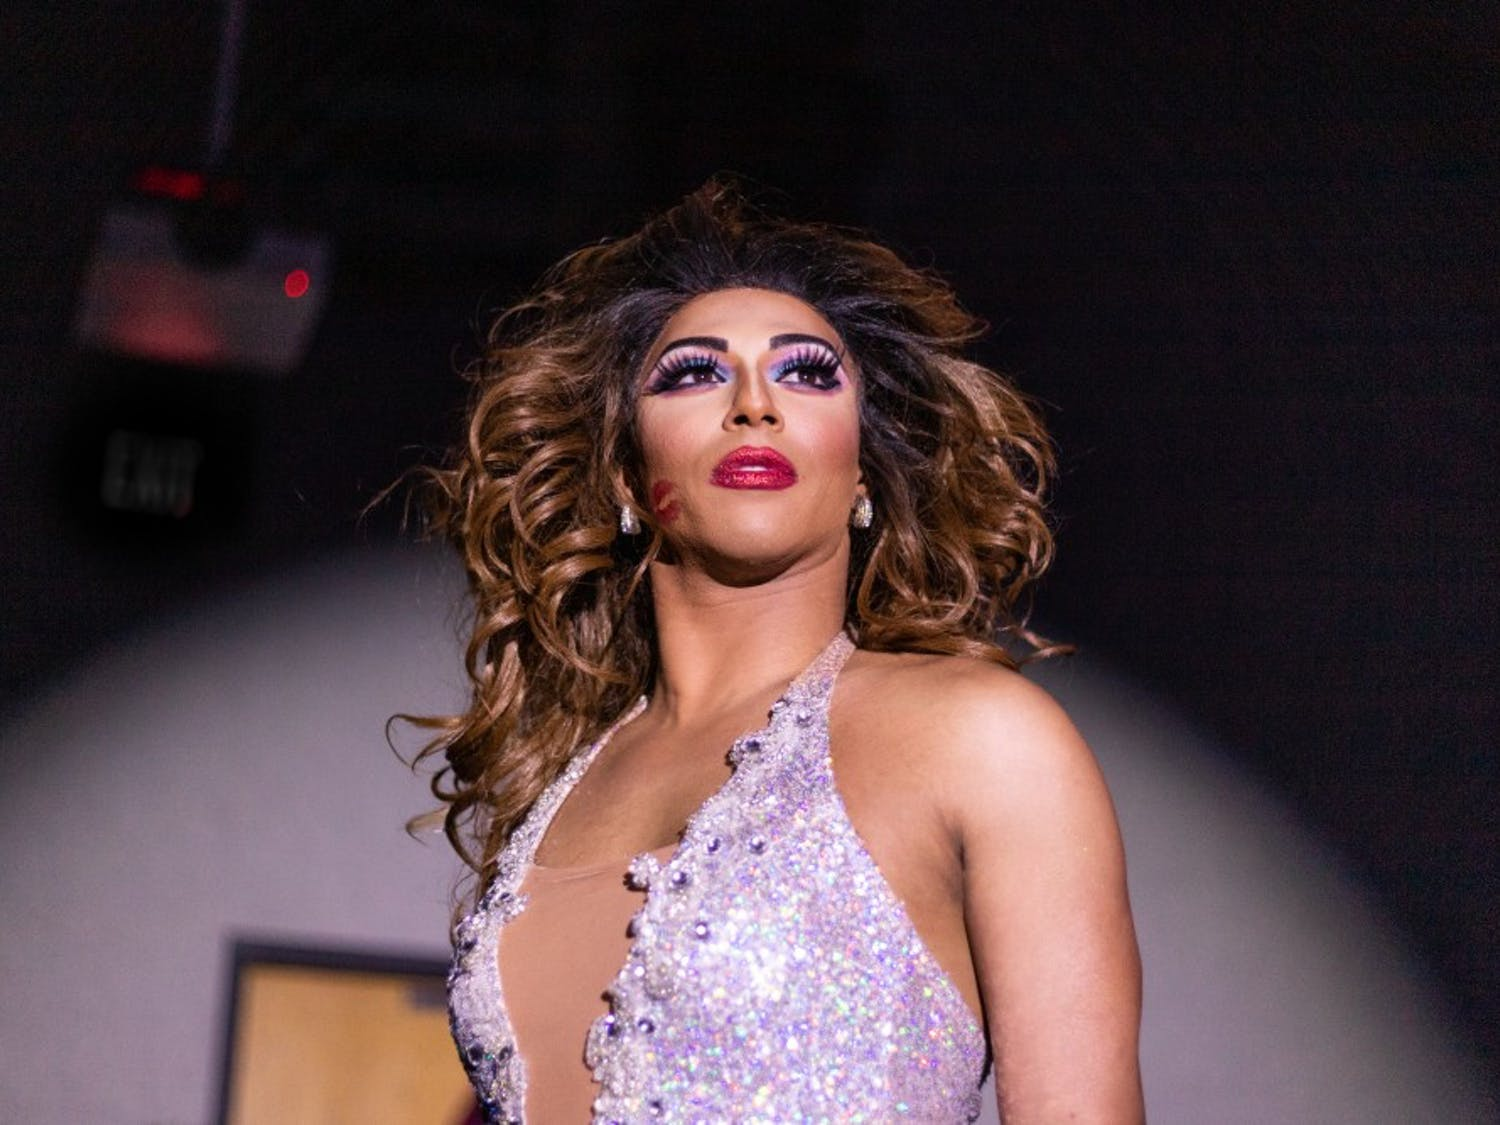 Drag Queen Shangela from RuPaul's Drag Race performs onstage in the Russell House Ballroom during the annual Birdcage event in 2018.